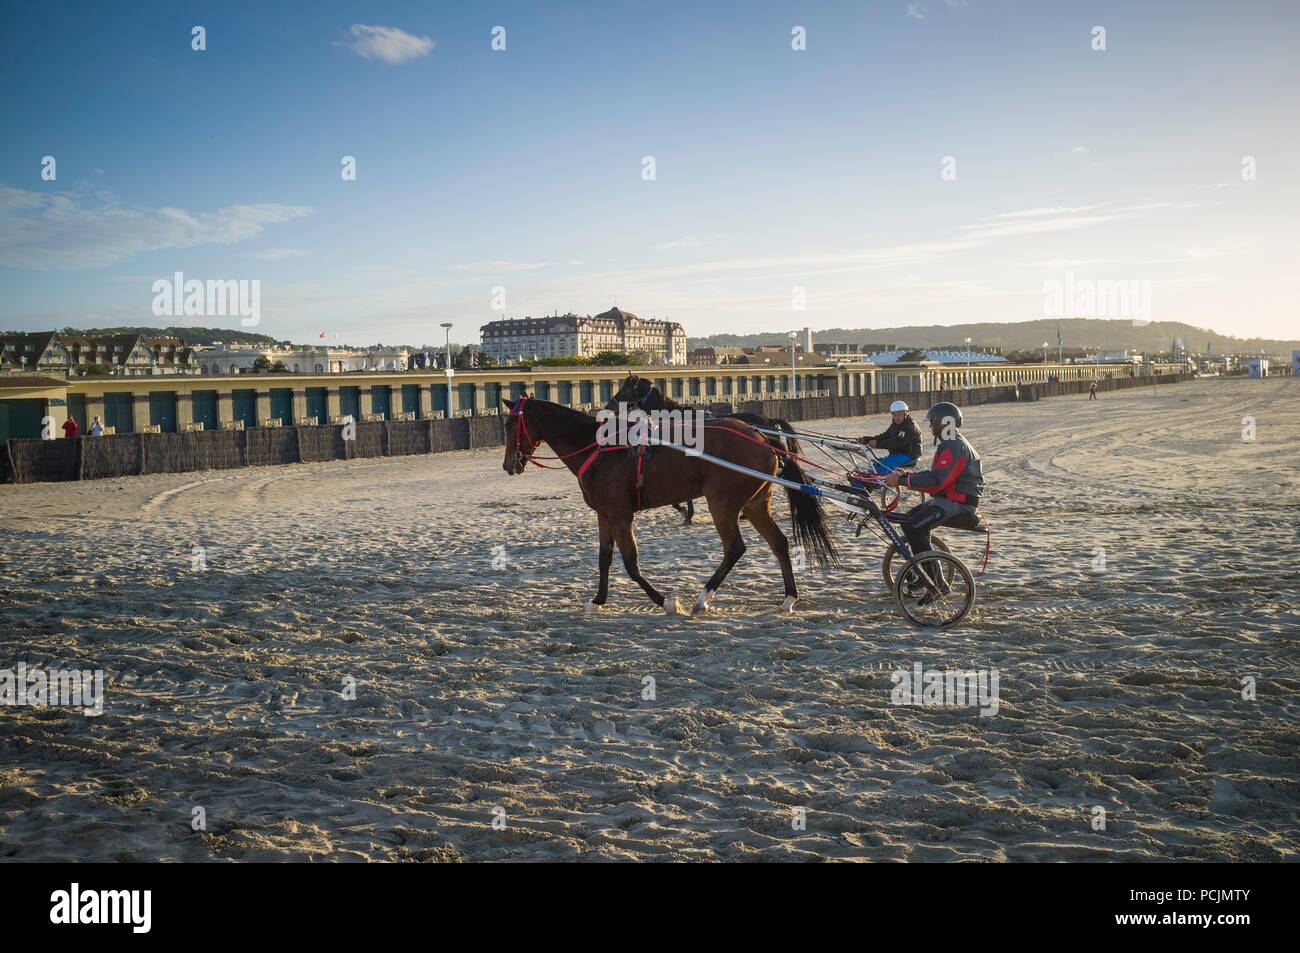 Exercising racehorses in harnesses with two-wheeled carts or sulky on the beach at Deauville, Normandy, France - Stock Image